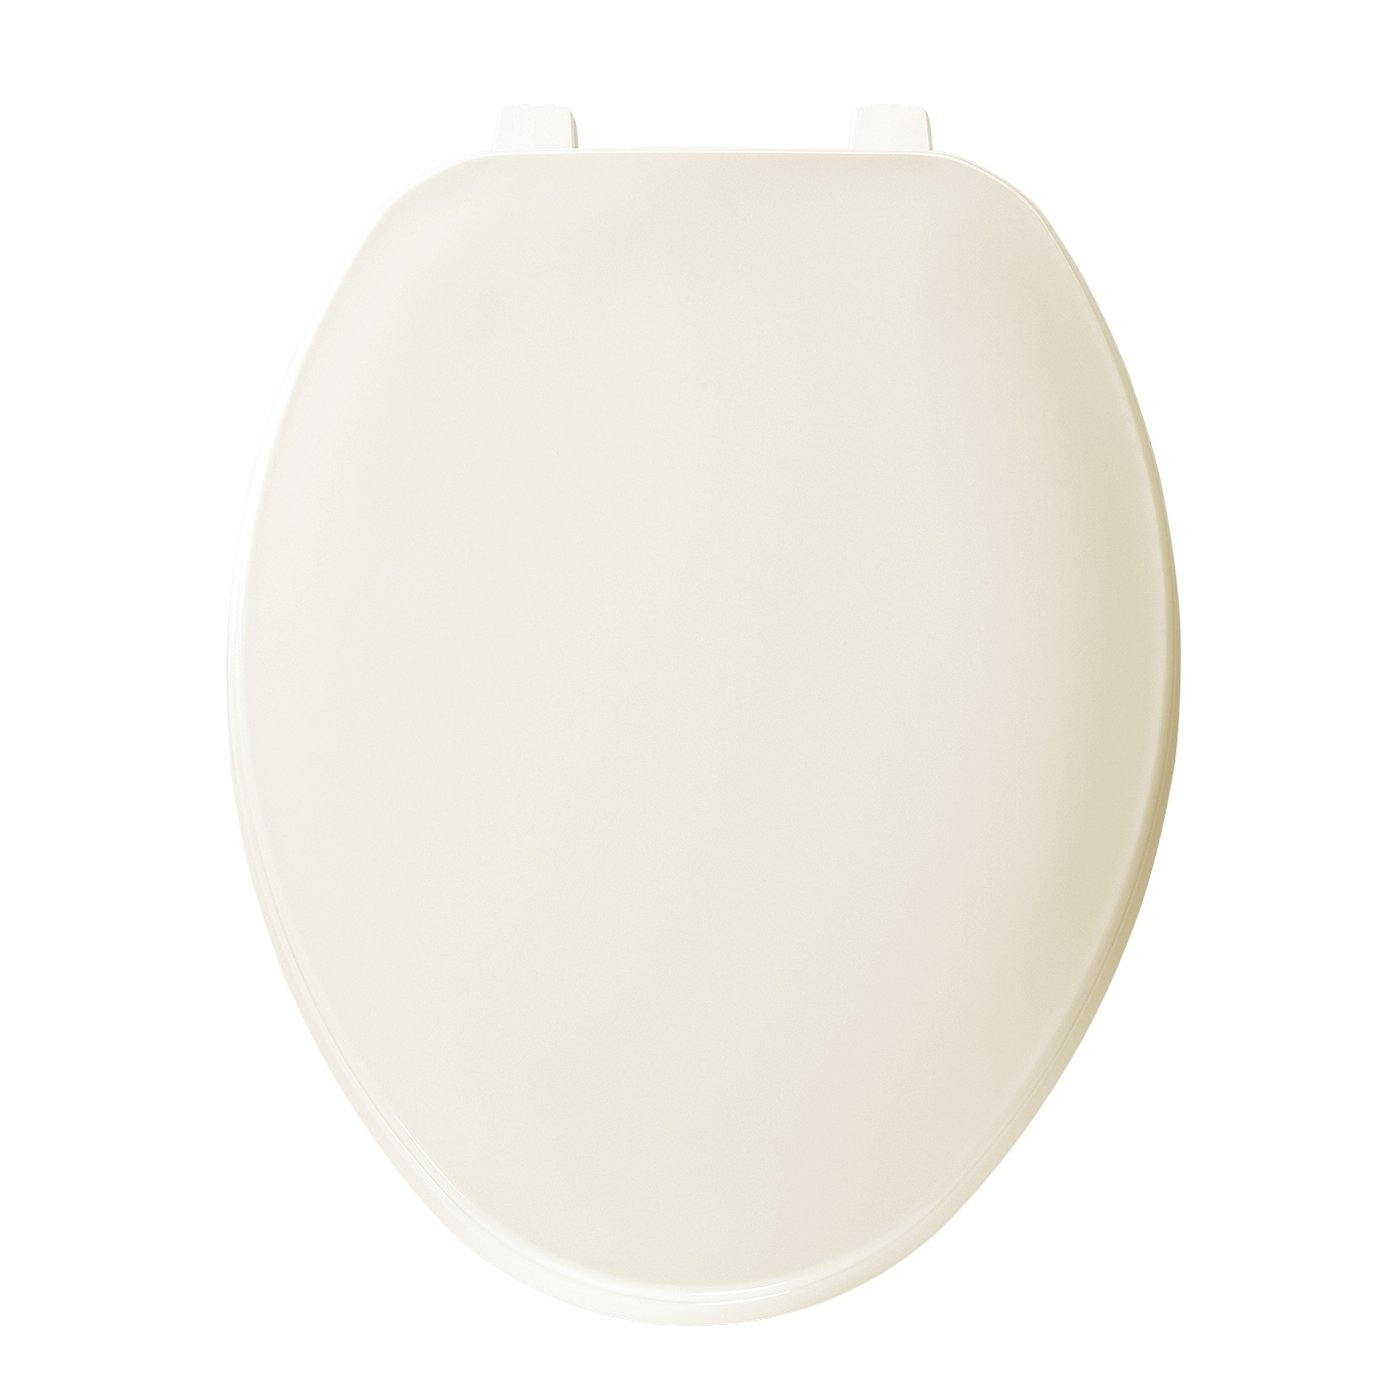 Bemis 170006 Economy Plastic Elongated Toilet Seat, Bone